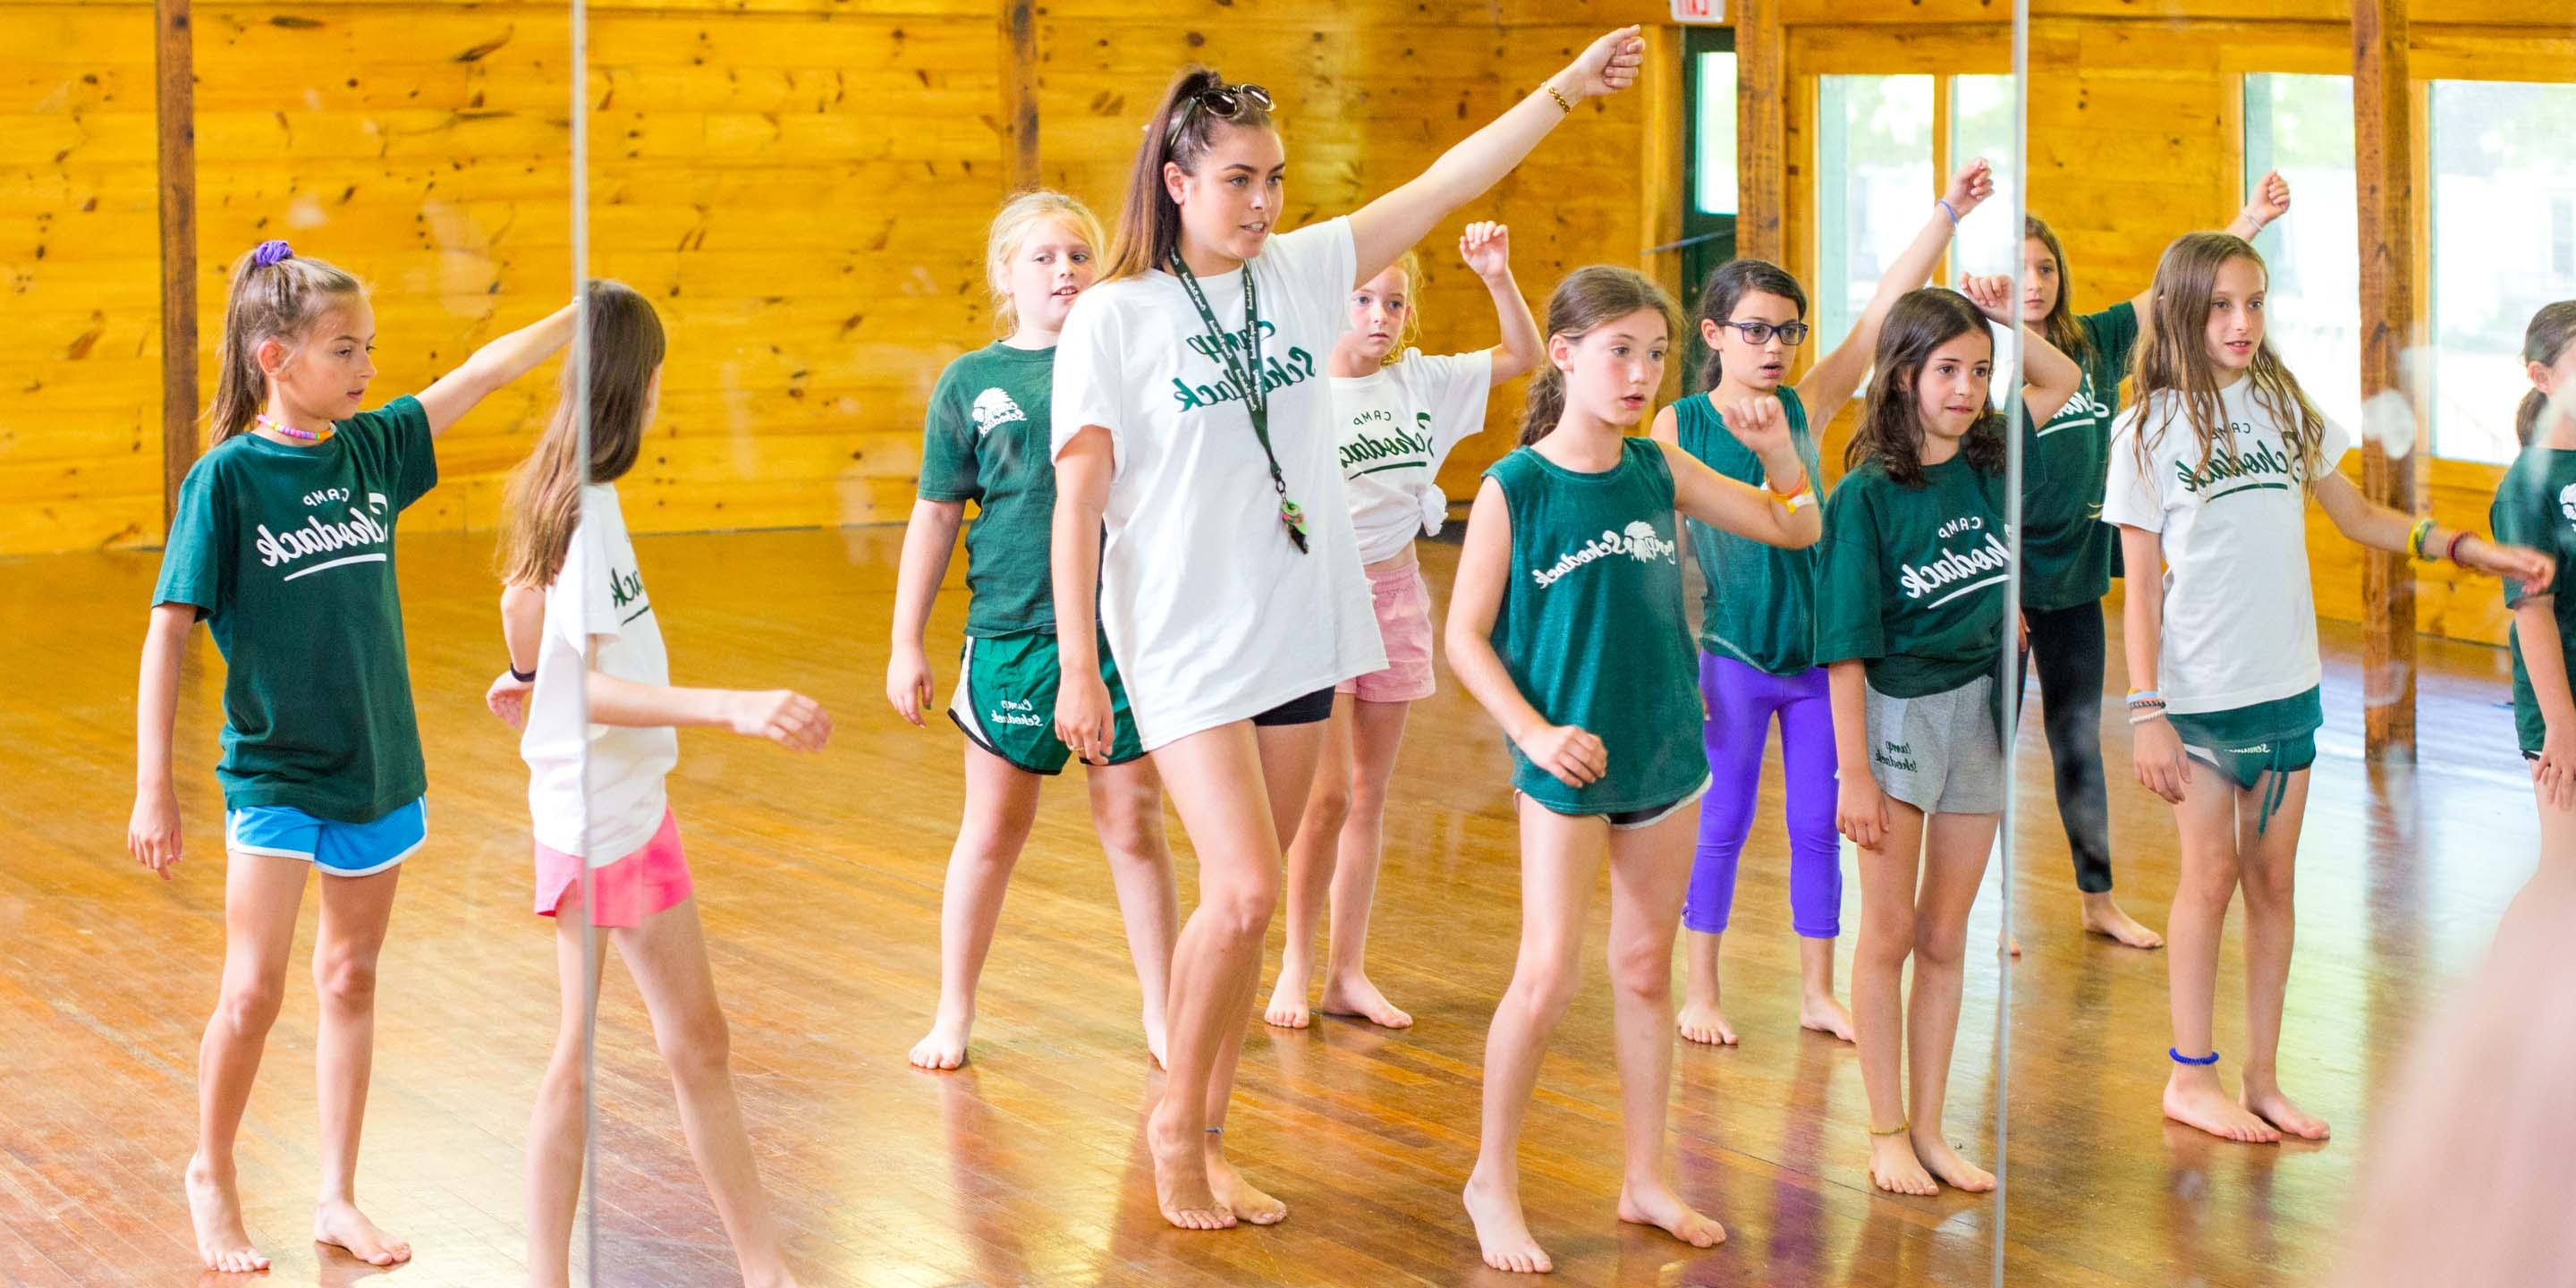 Staff member leads campers in dance practice